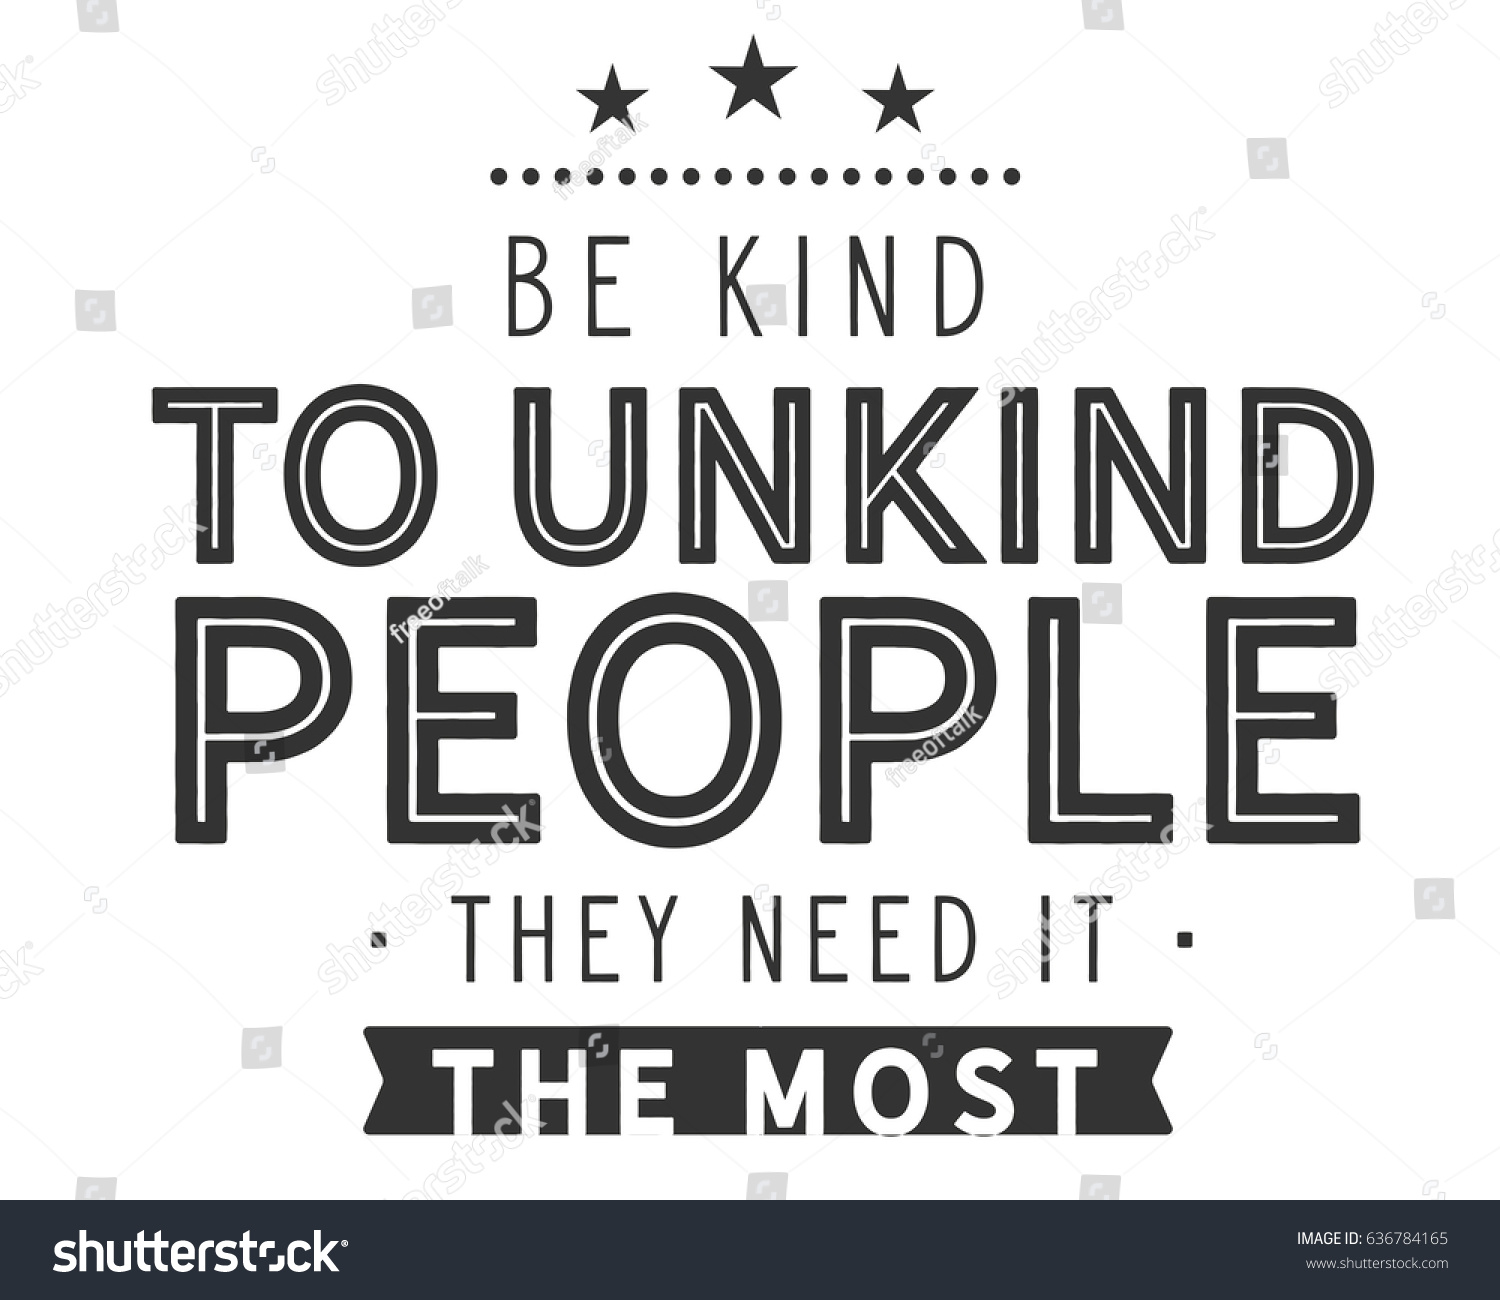 Be Kind Unkind People They Need Stockvector Rechtenvrij 636784165